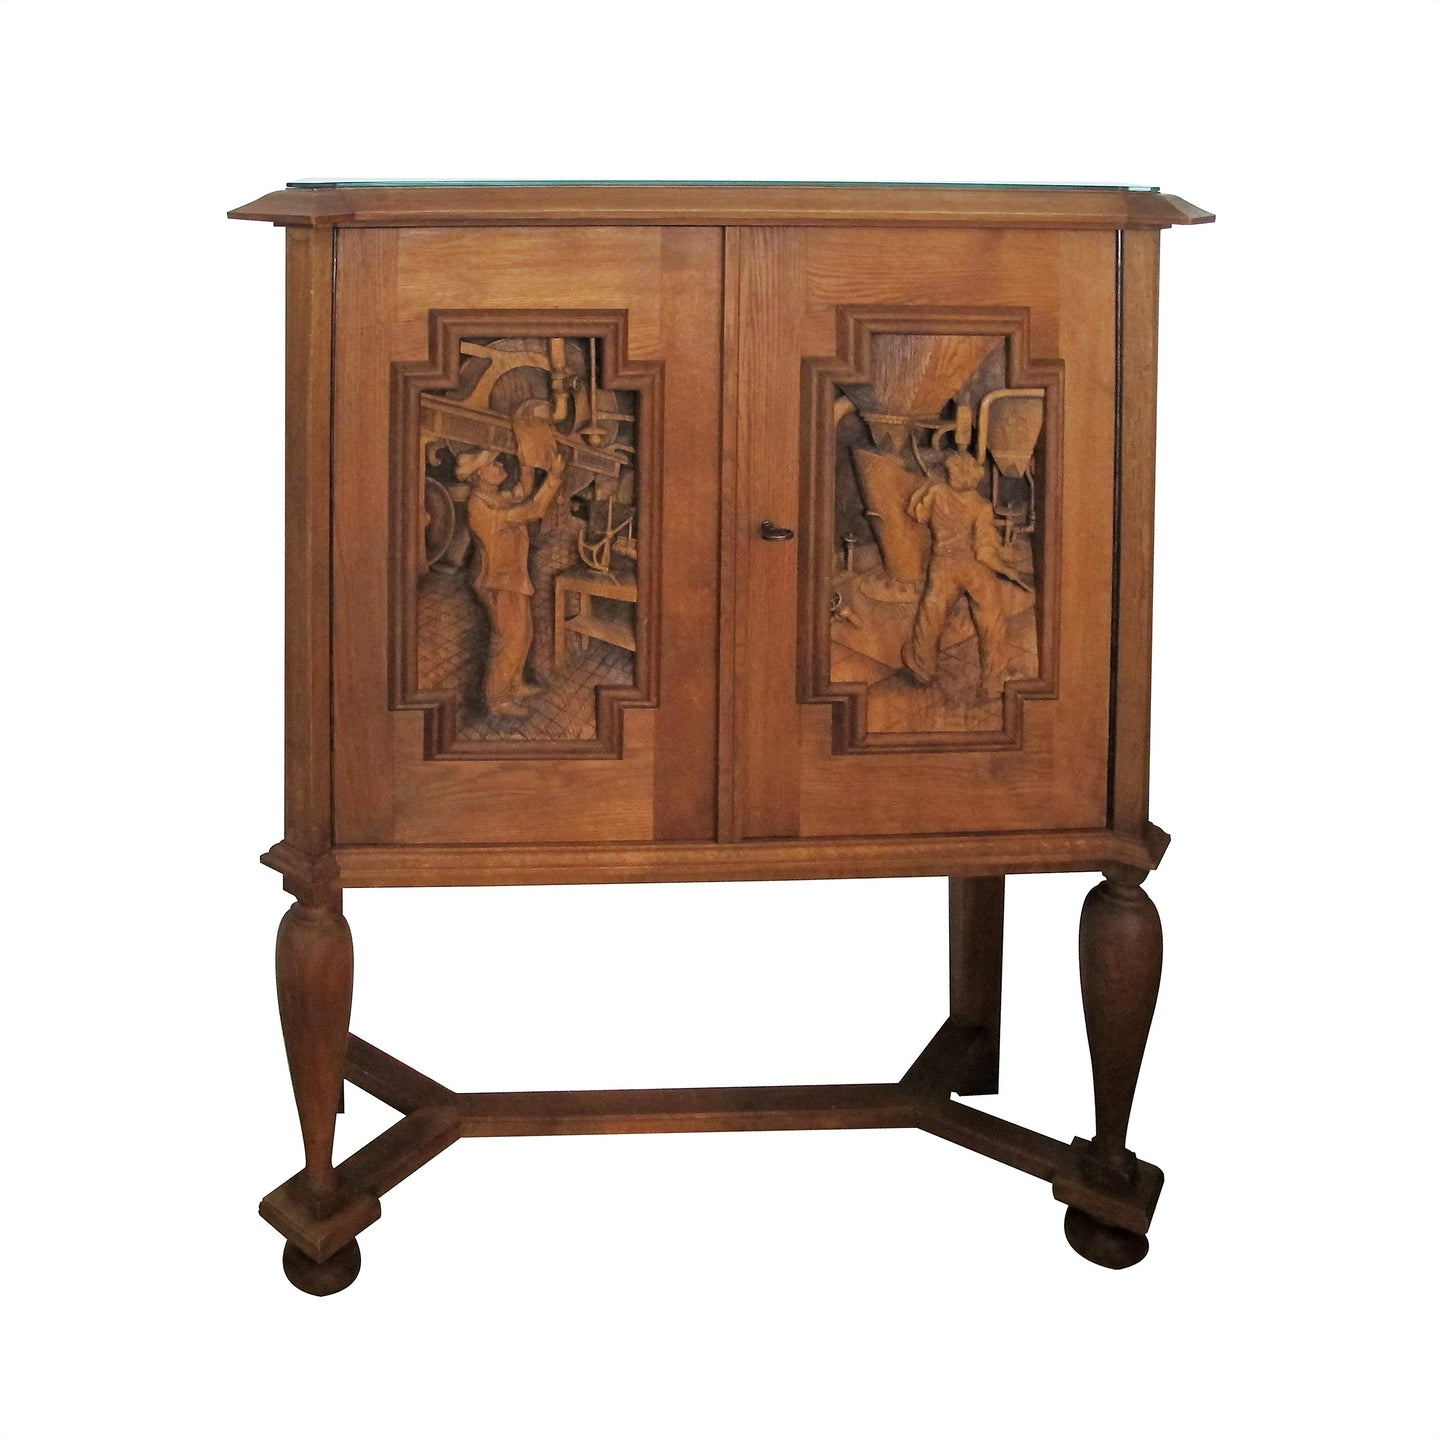 A 1940's oak cabinet with carvings by E. Hallanvaara, Finnish